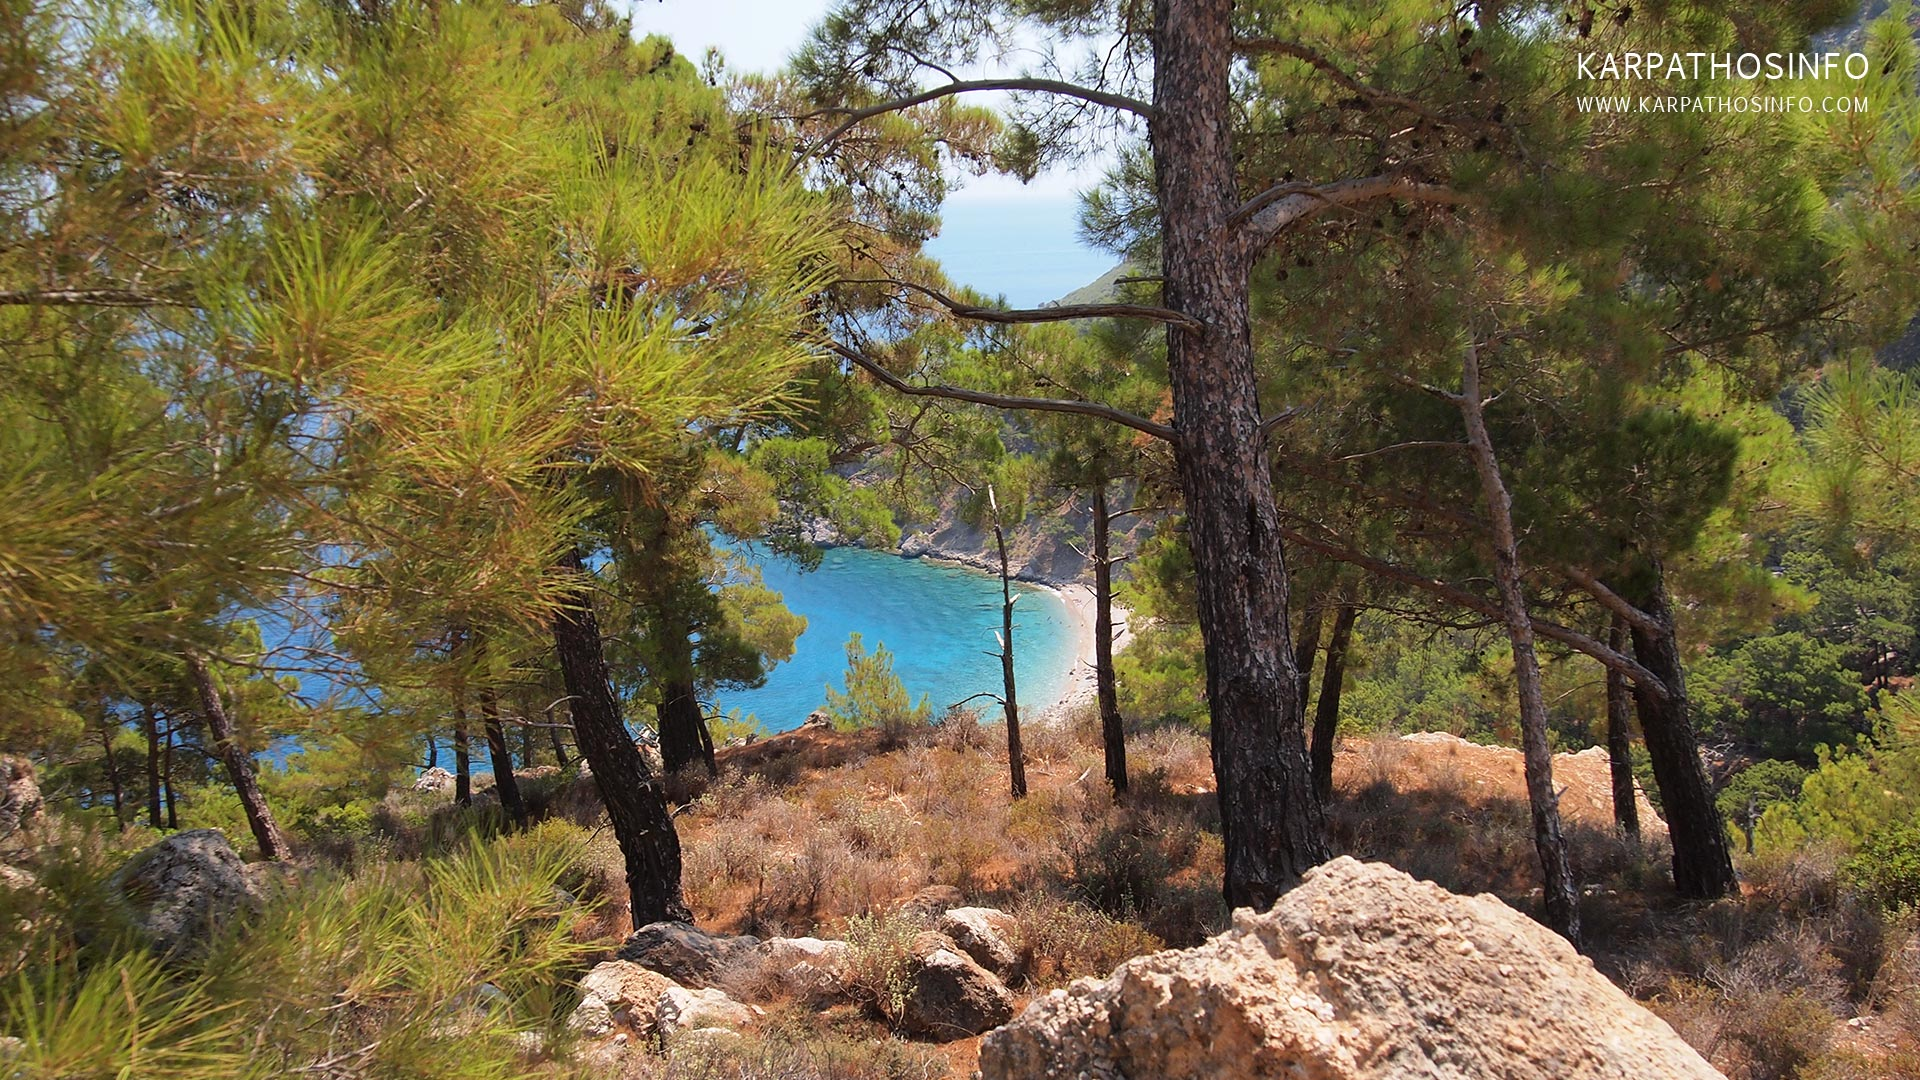 images/slider/hiking-in-karpathos.jpg